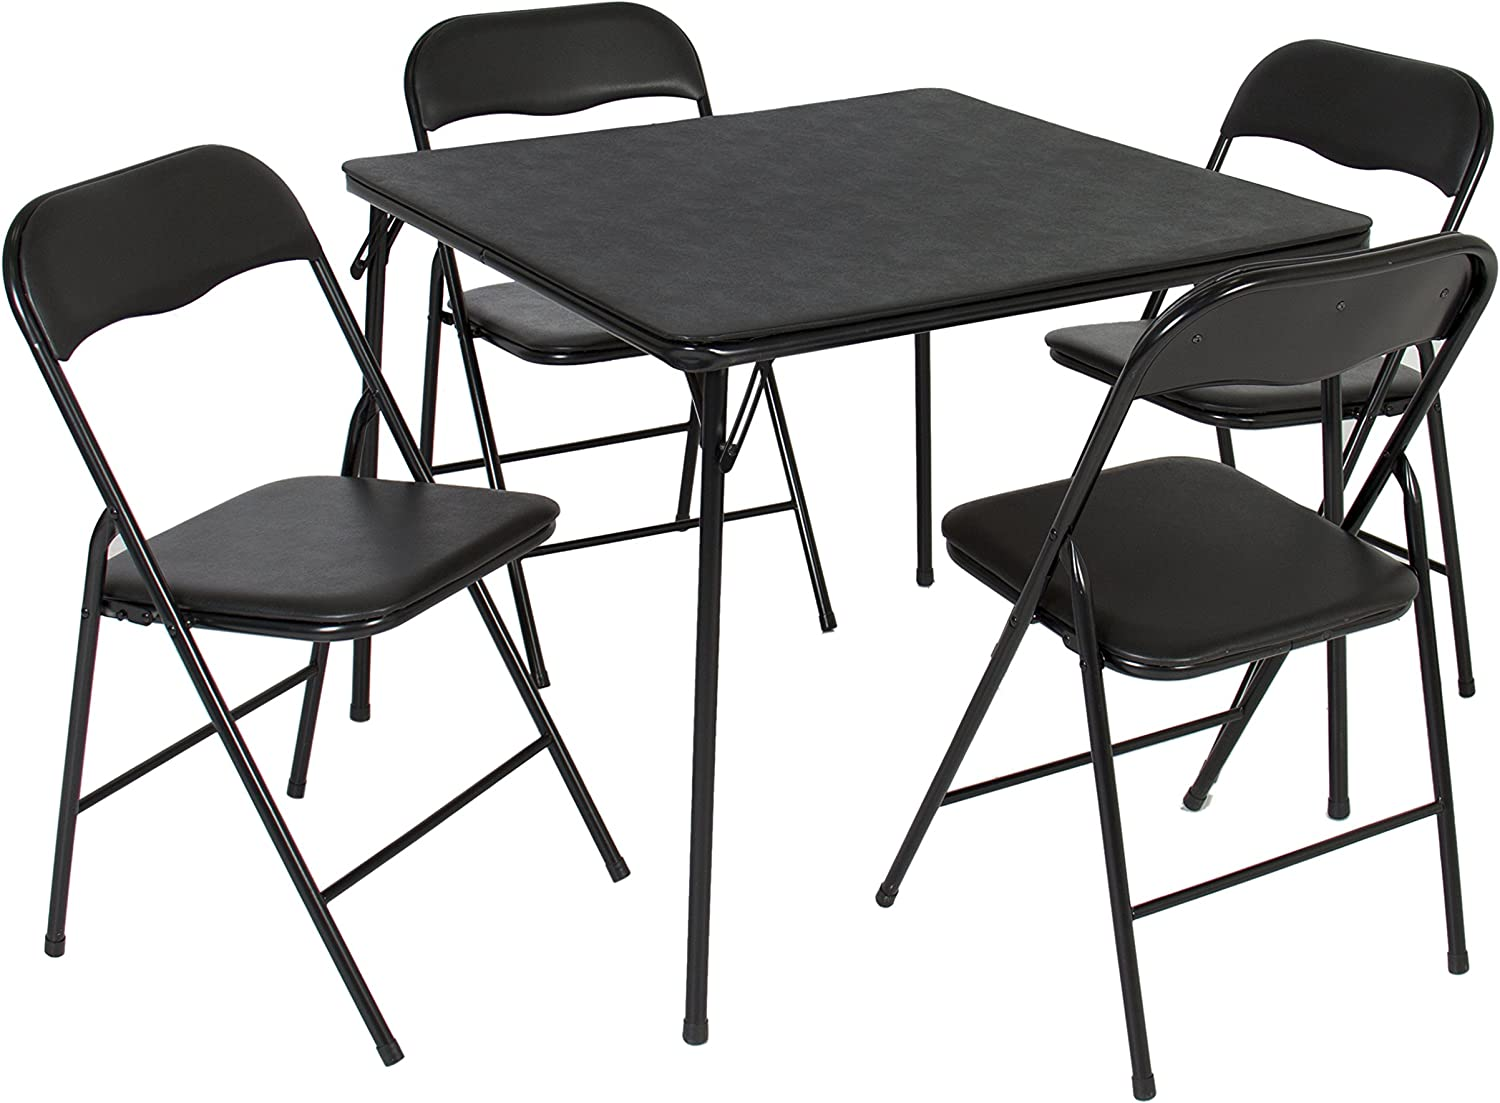 Best Choice Products 5PC Folding Table Chairs Card Poker Game Parties Portable Furniture Dining Set